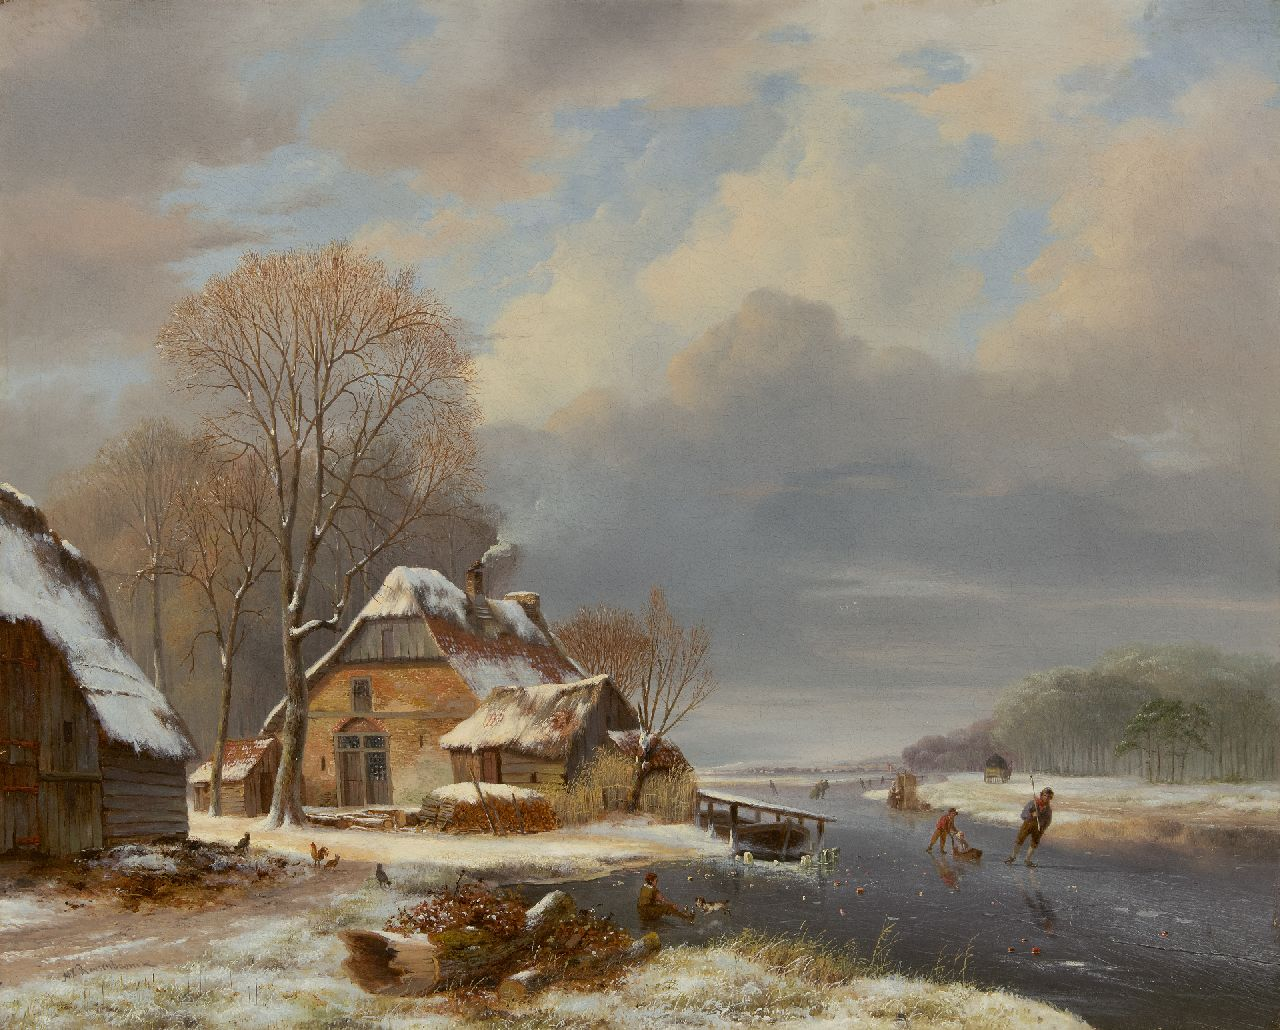 Roosenboom N.J.  | Nicolaas Johannes Roosenboom | Paintings offered for sale | A frozen river with skaters near a farm, oil on canvas 71.2 x 87.7 cm, signed l.l.